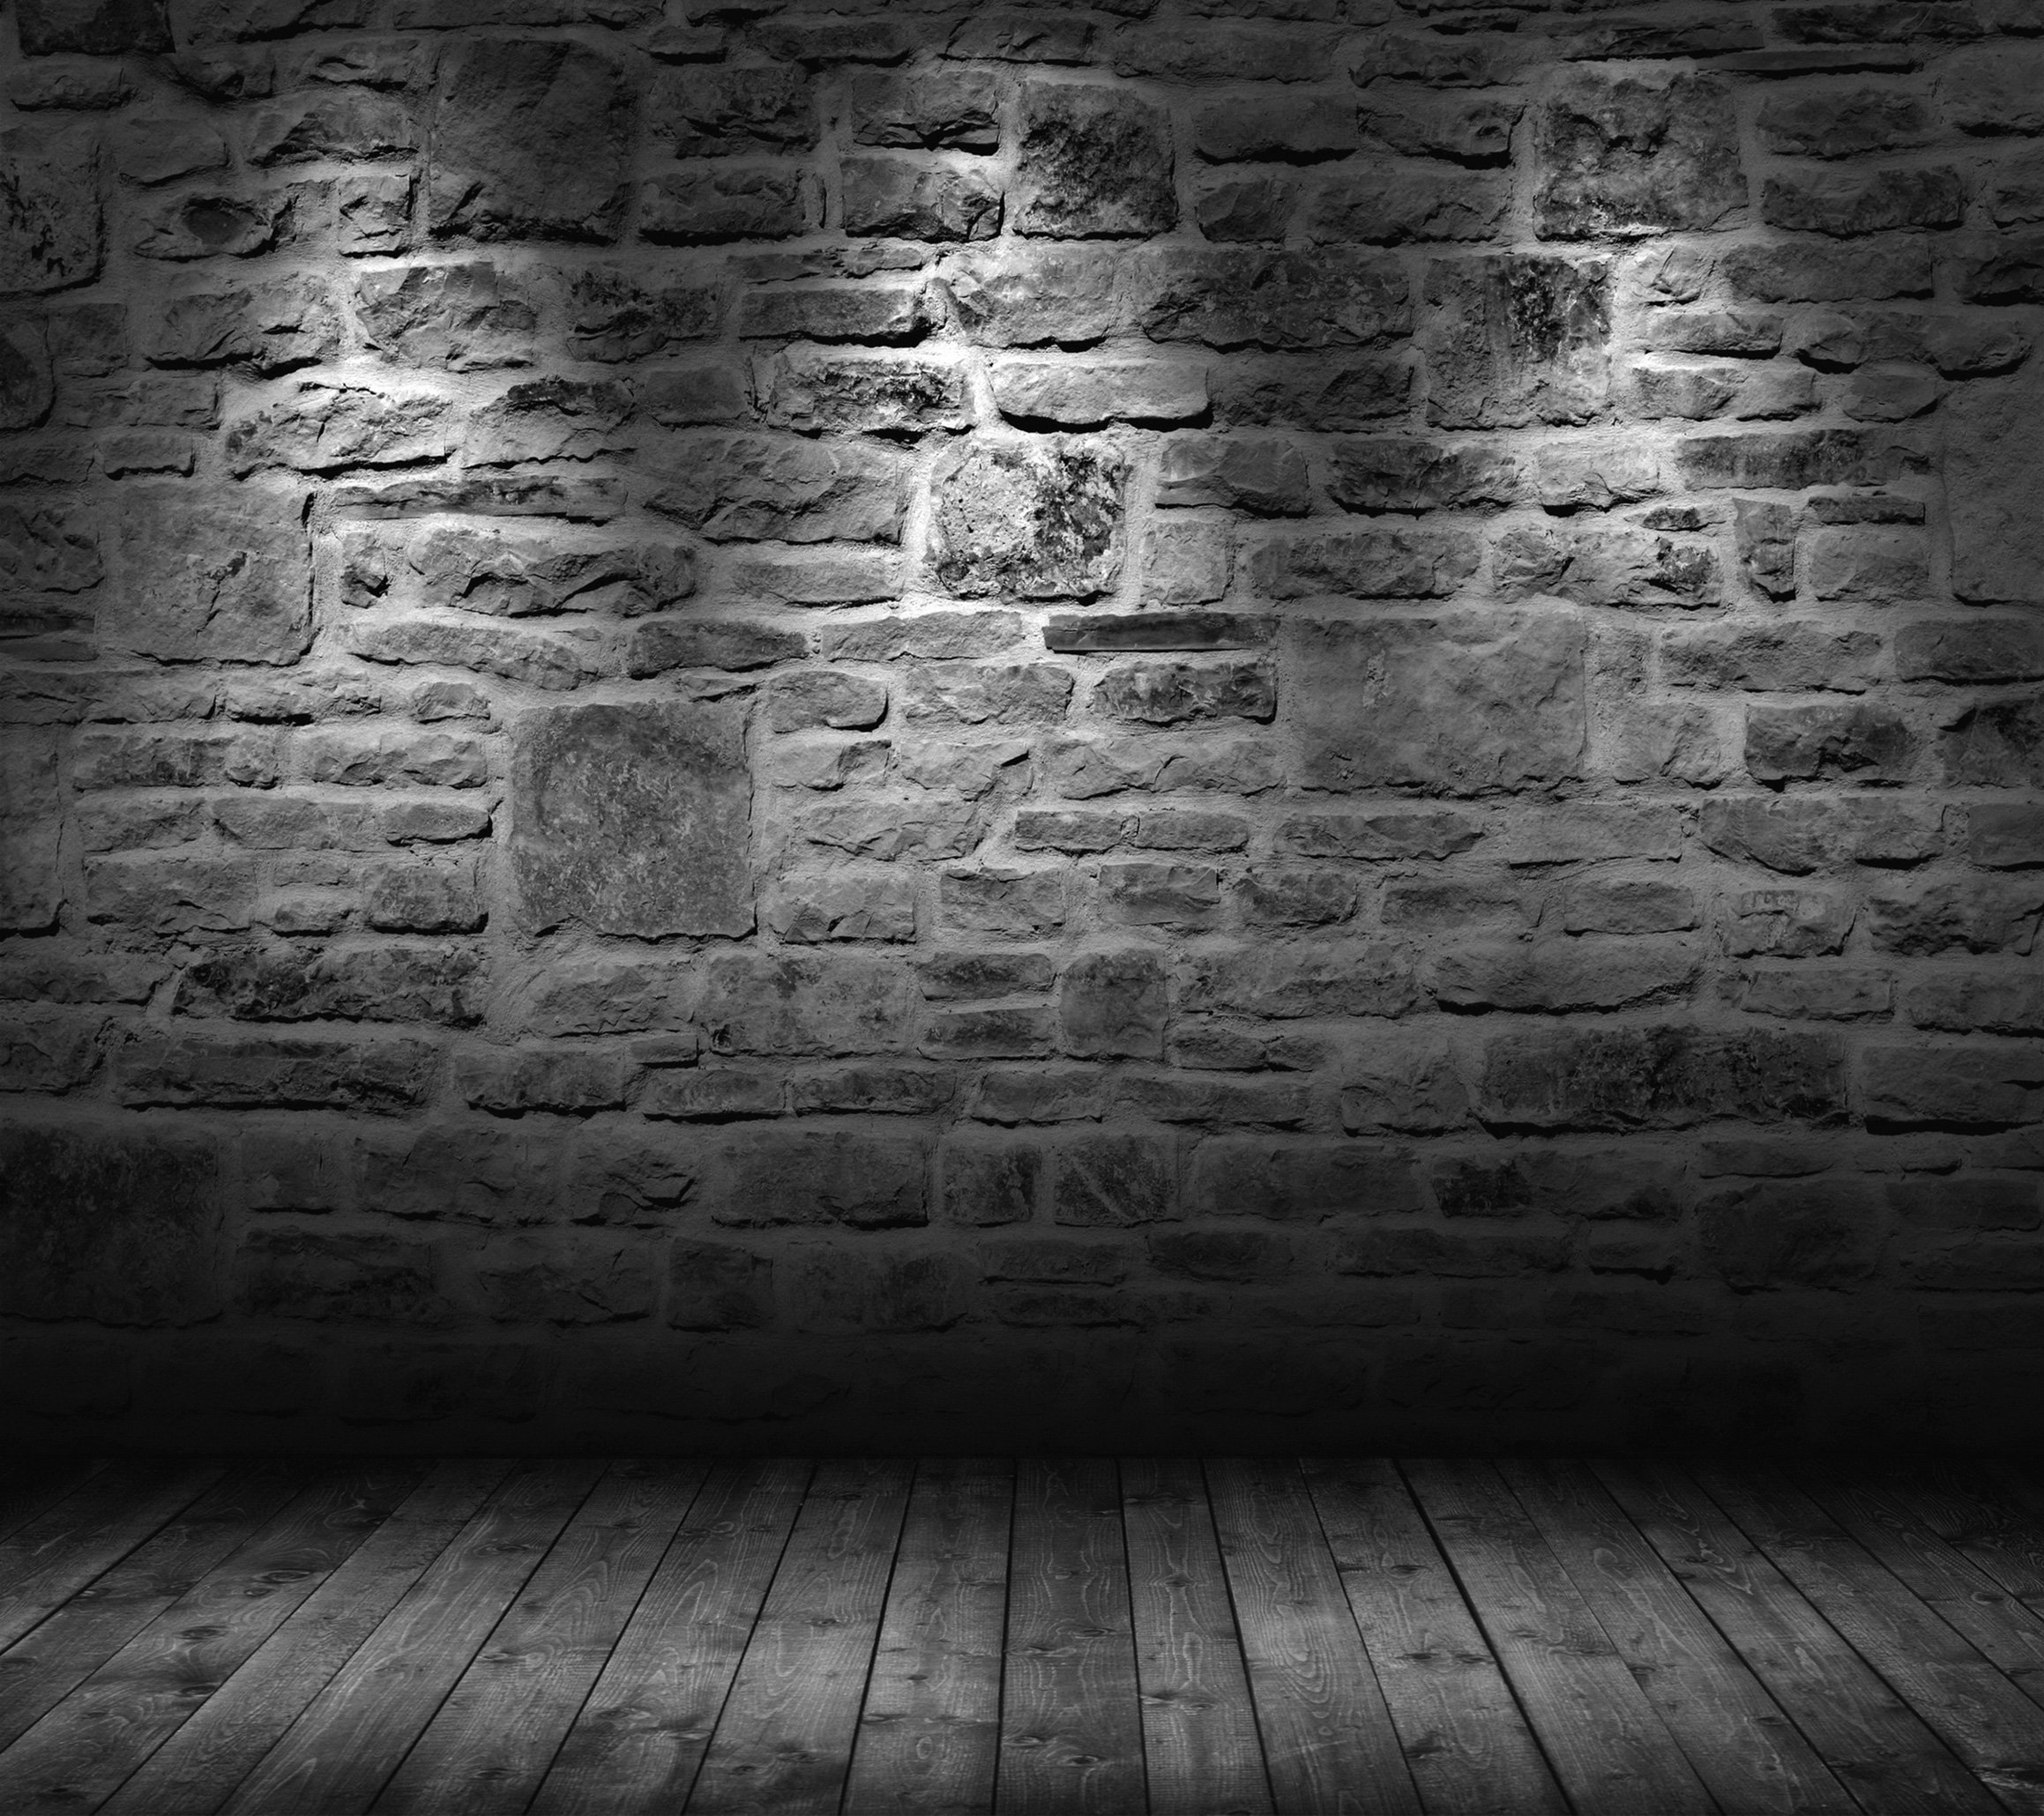 Wallpaper Of Wall: Black Wall Background, Black, Wall, Retro Background Image